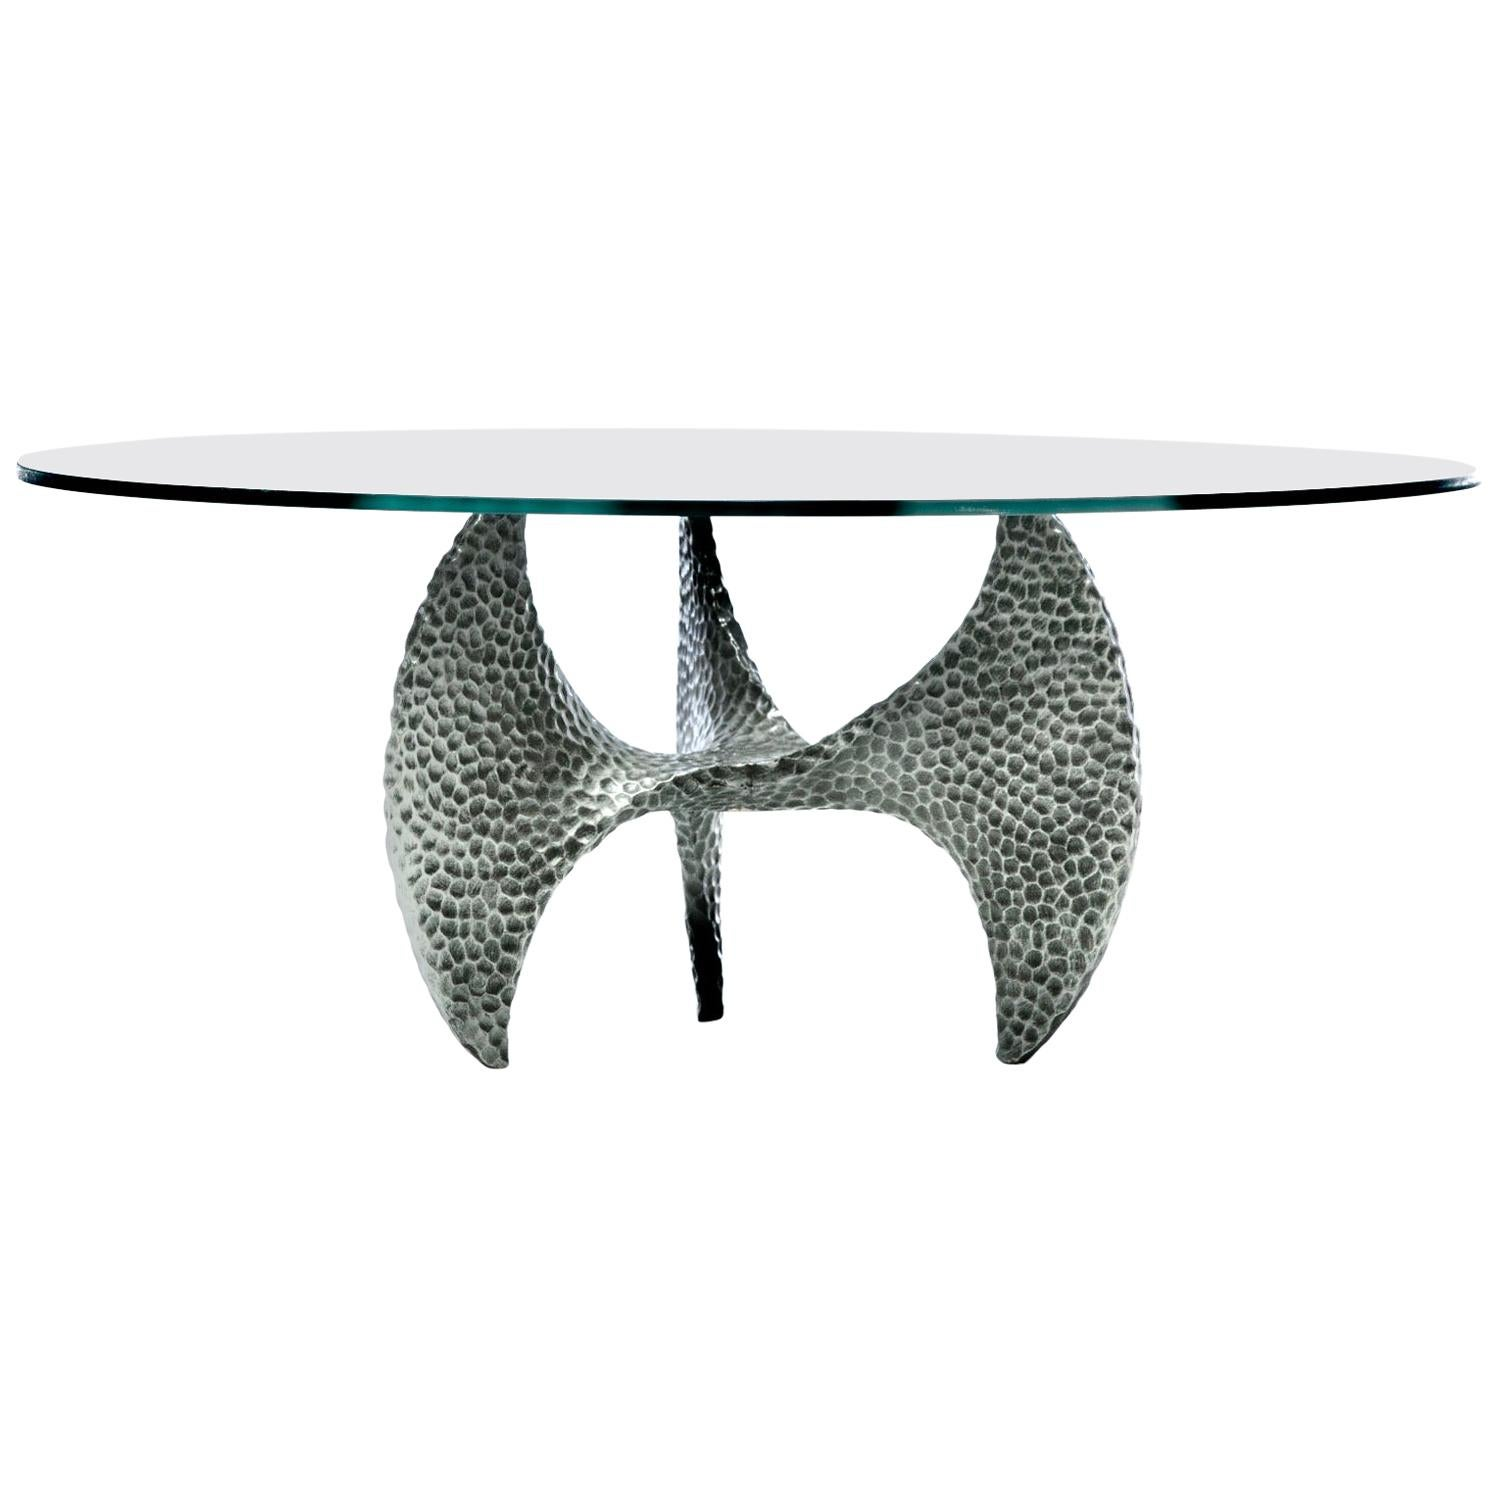 Paul Evans Style Brutalist Propeller Base Coffee Table Stamped, 1970